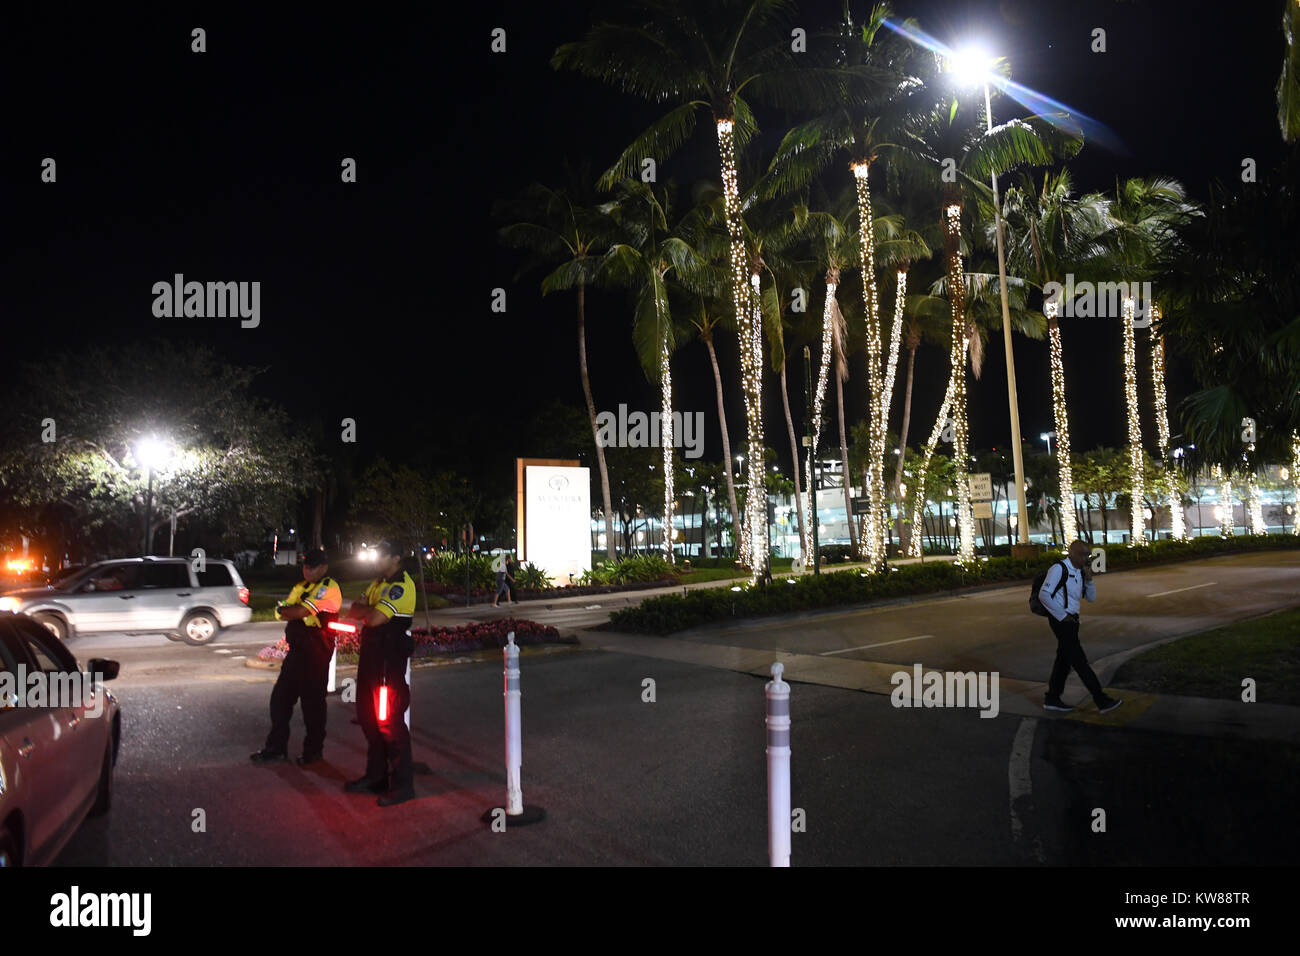 AVENTURA, FL - DECEMBER 23: Police said that there were no victims